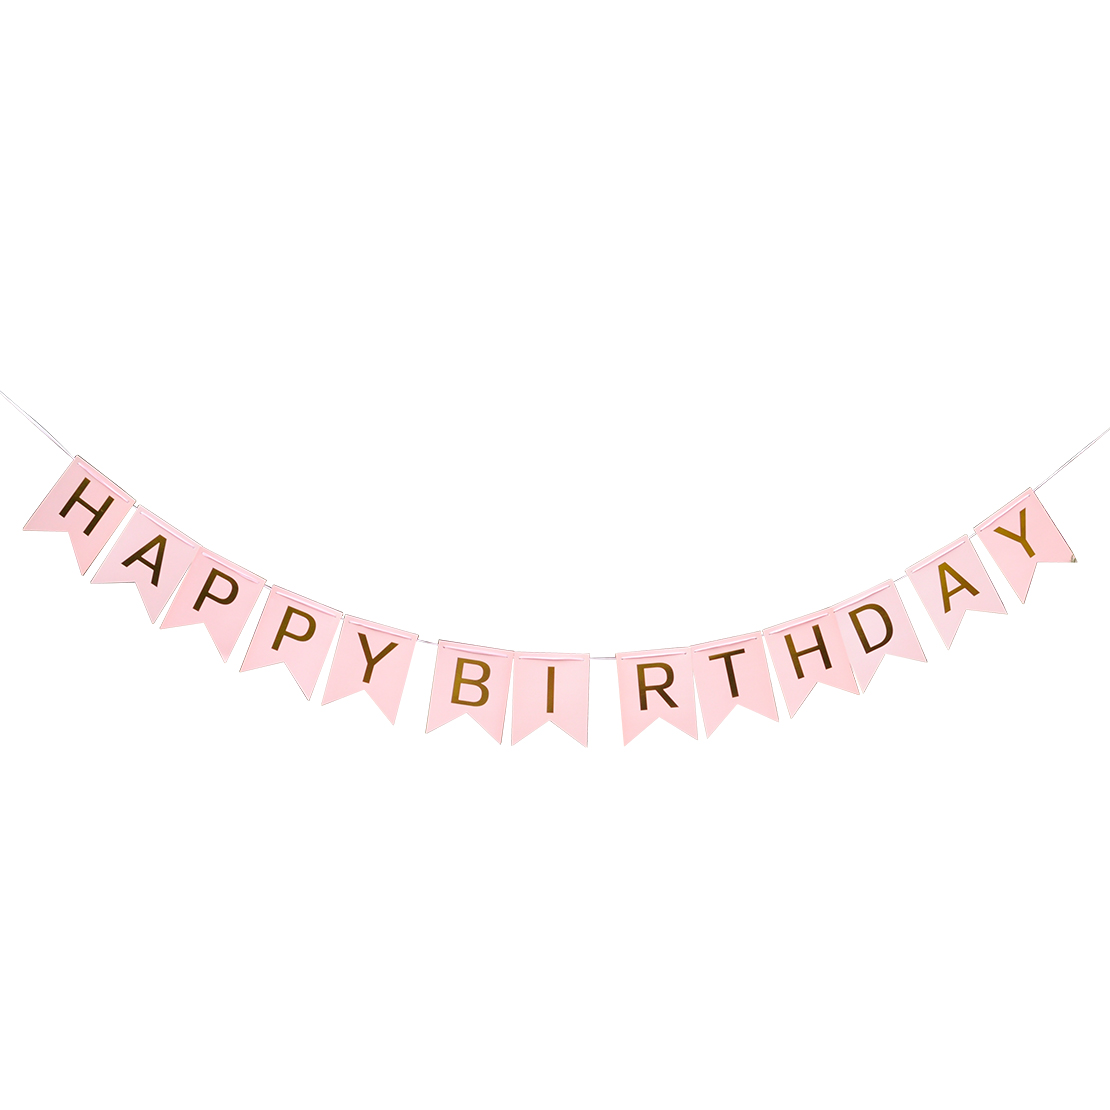 Glitter Paper Birthday Party Hanging Bunting Banner Flag: Glitter Happy Birthday Letters Bunting Banner Hanging